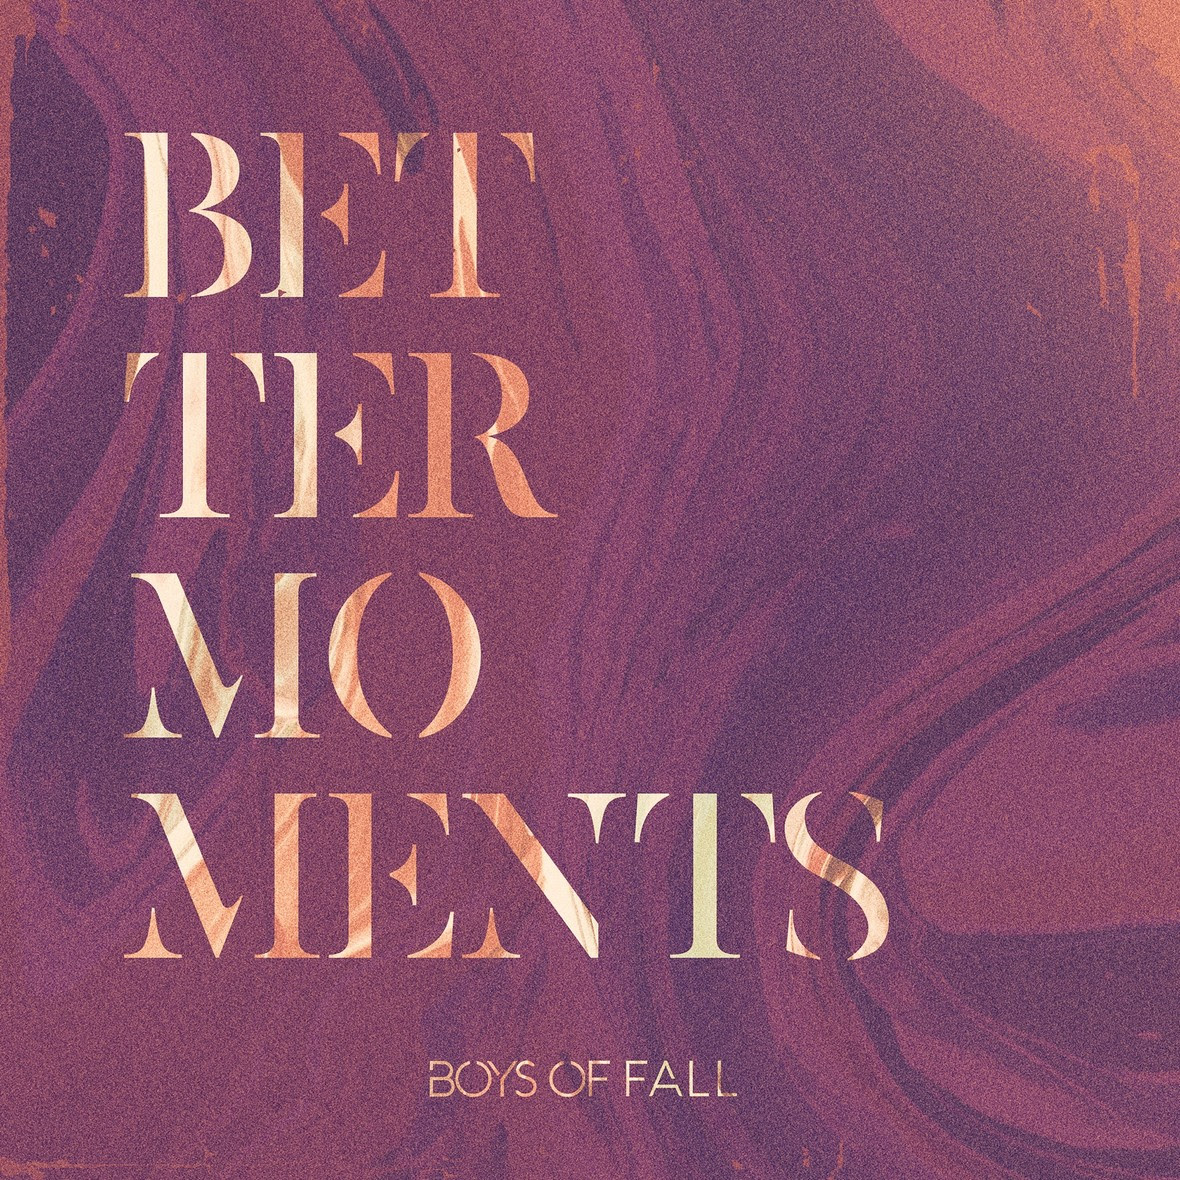 boys of fall better moments cover